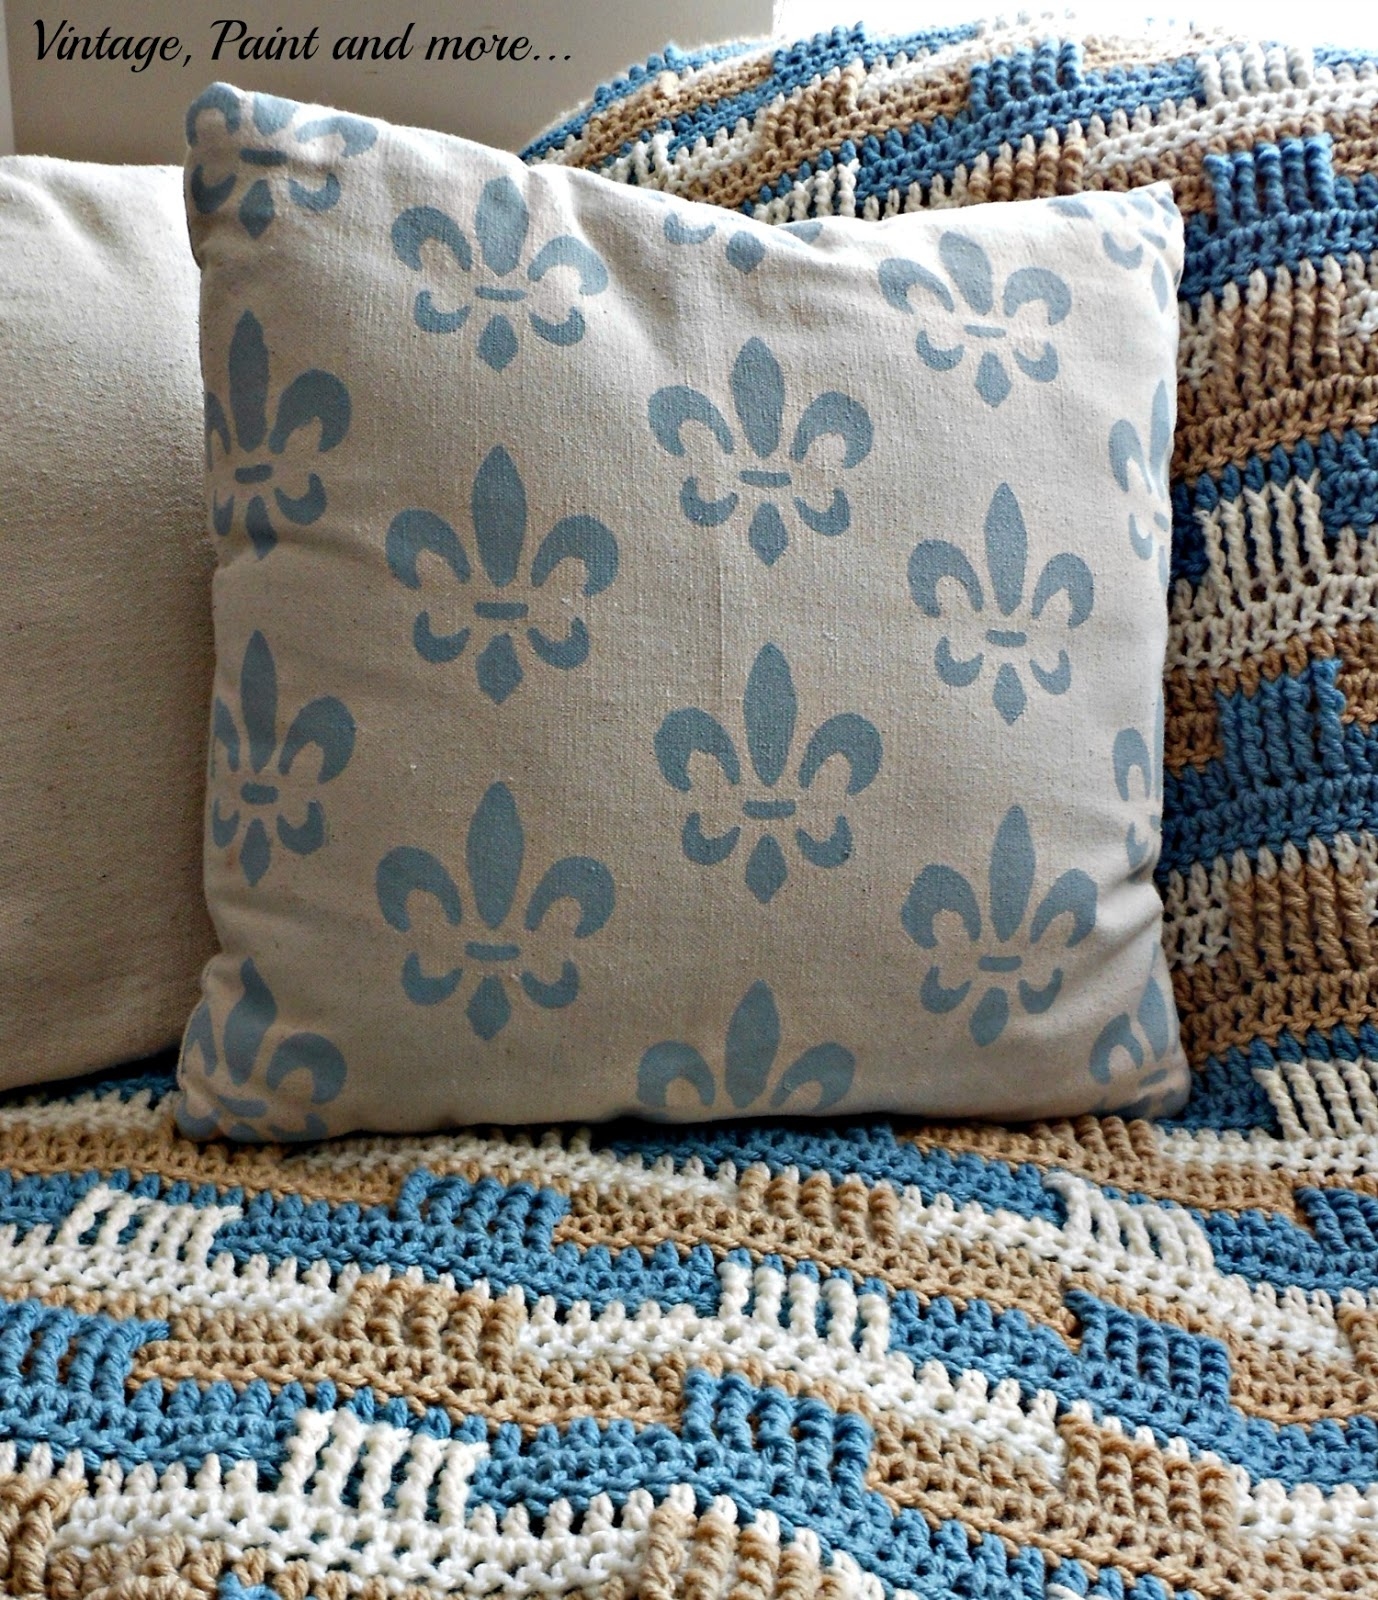 a pillow made from drop cloth fabric and stenciled in a fleur de lis design with craft paint